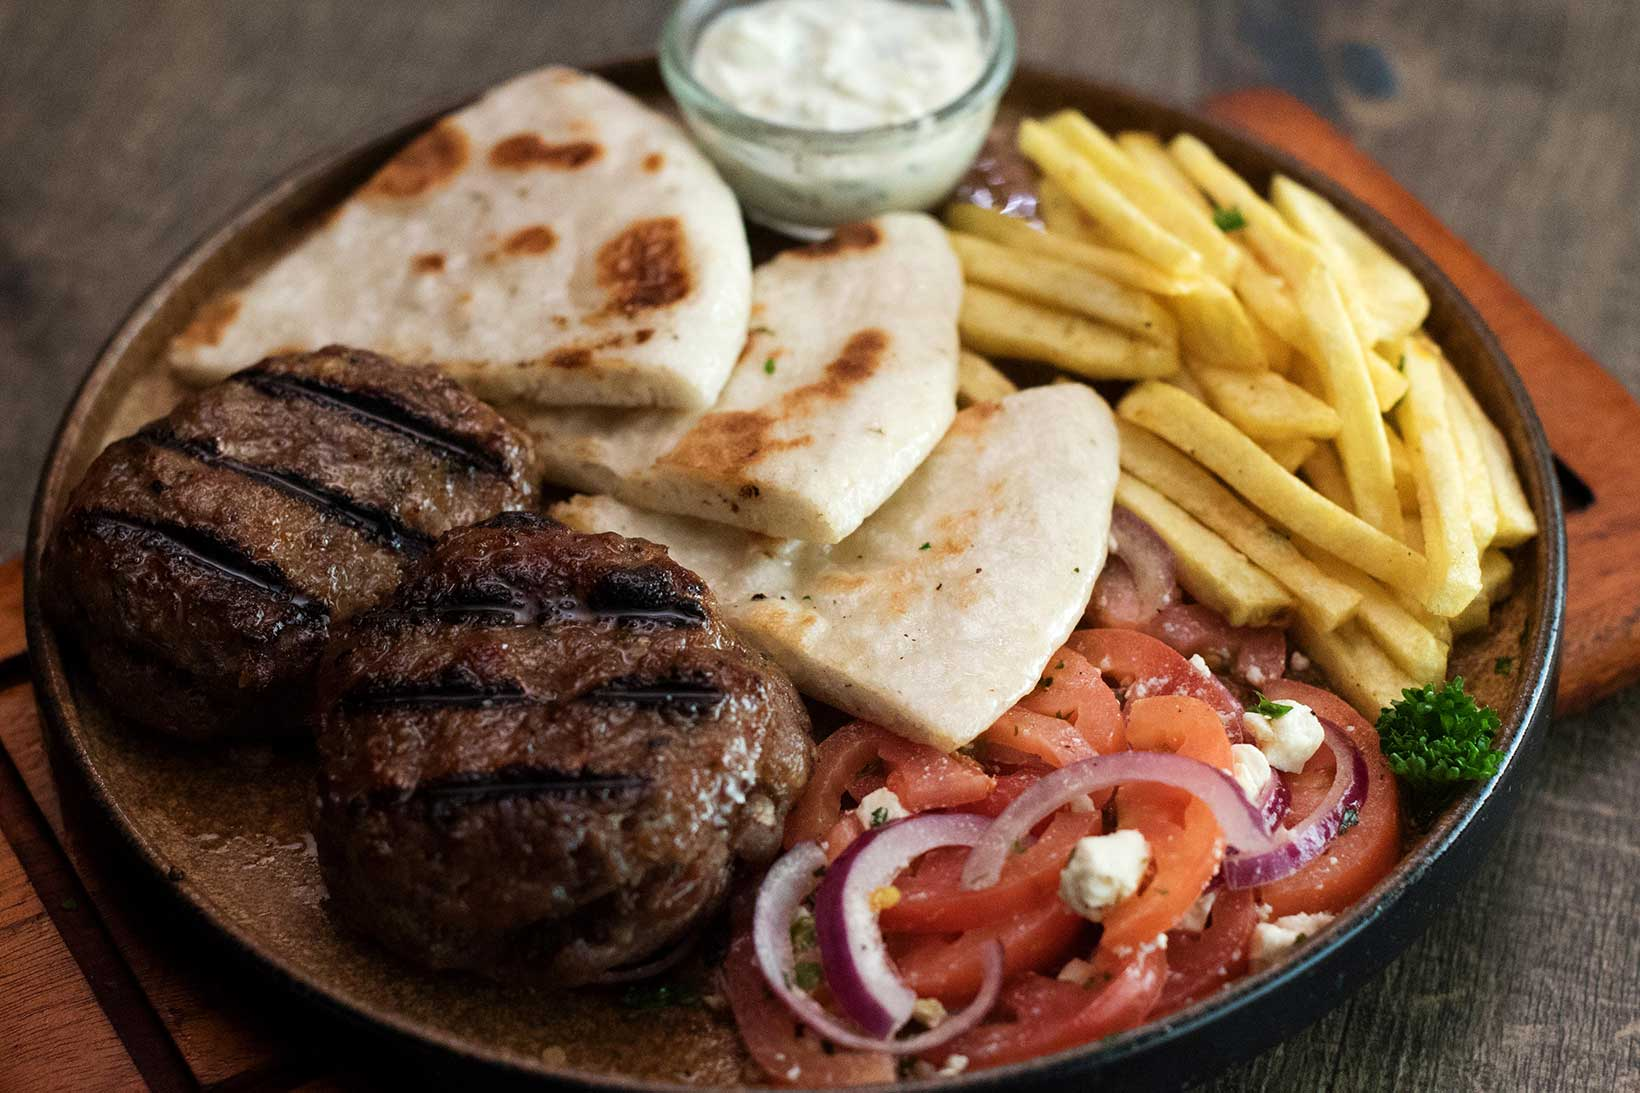 Beef and pork patties, stuffed with feta and tomato cheese, served with pita or rice and salad tasty finish.